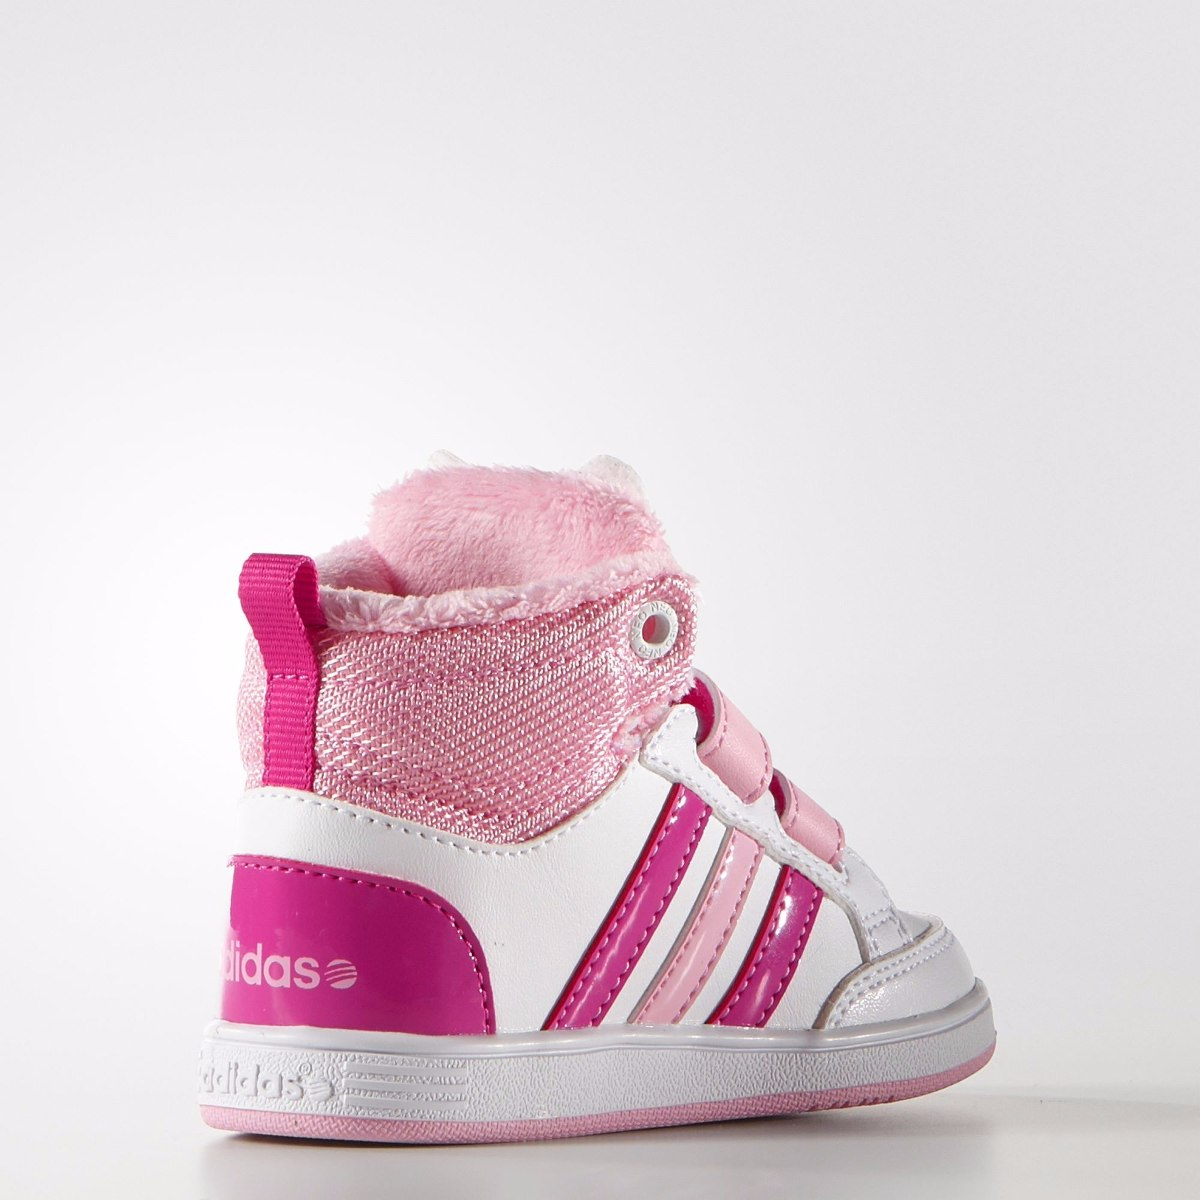 d1066d4a1ab ... discount code for tenis neo hoops animal mid oso polar bebe adidas  f98865. cargando zoom